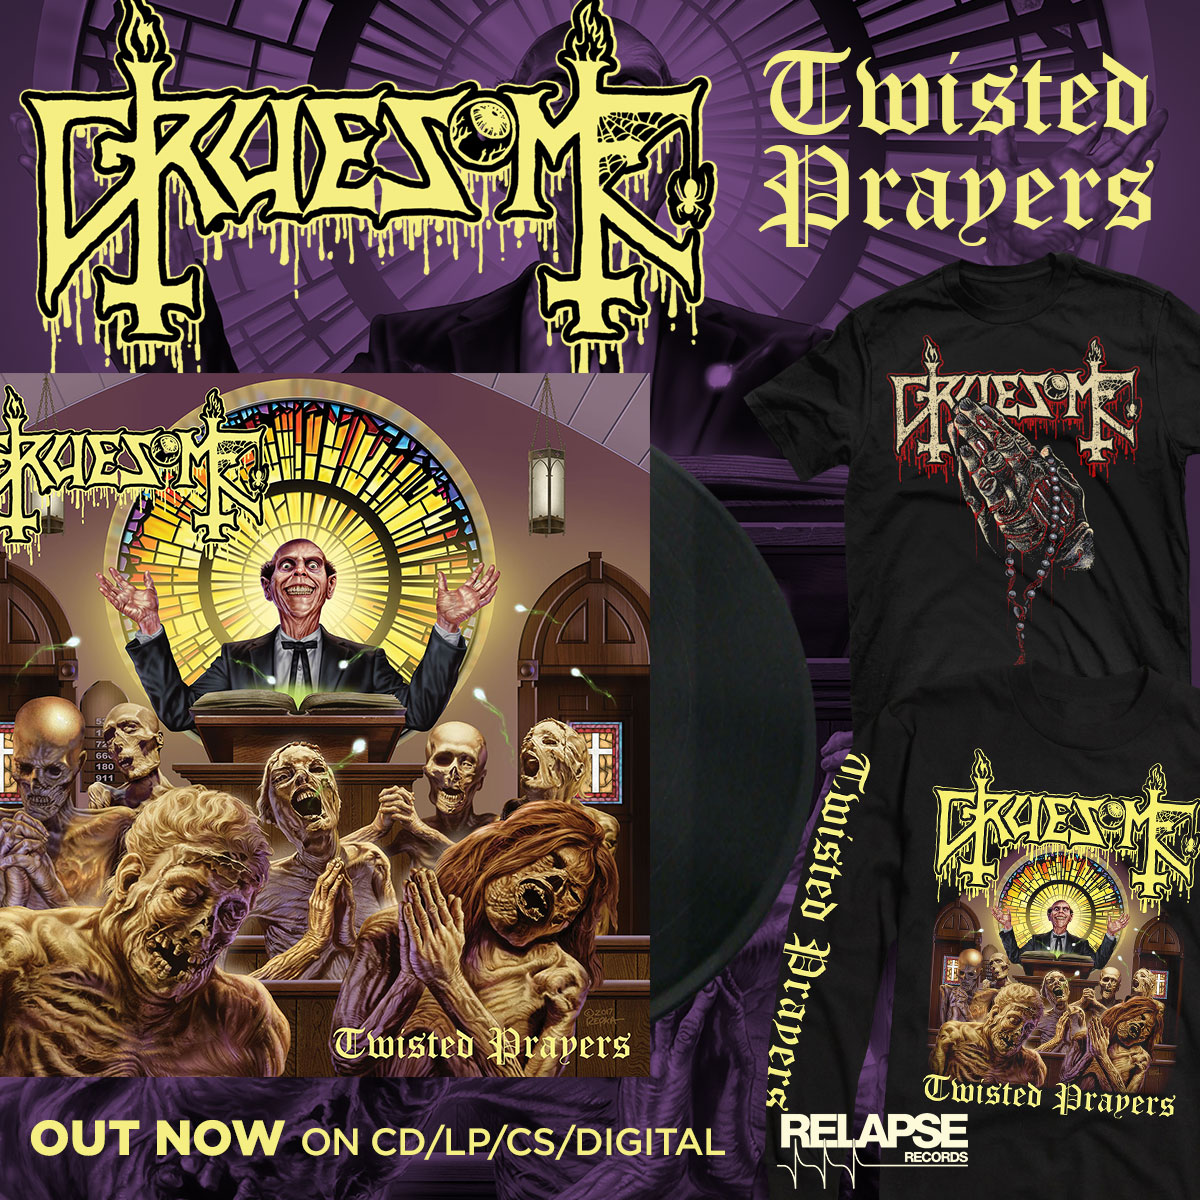 gruesome-twisted-prayers-death-metal-relapse-out-now